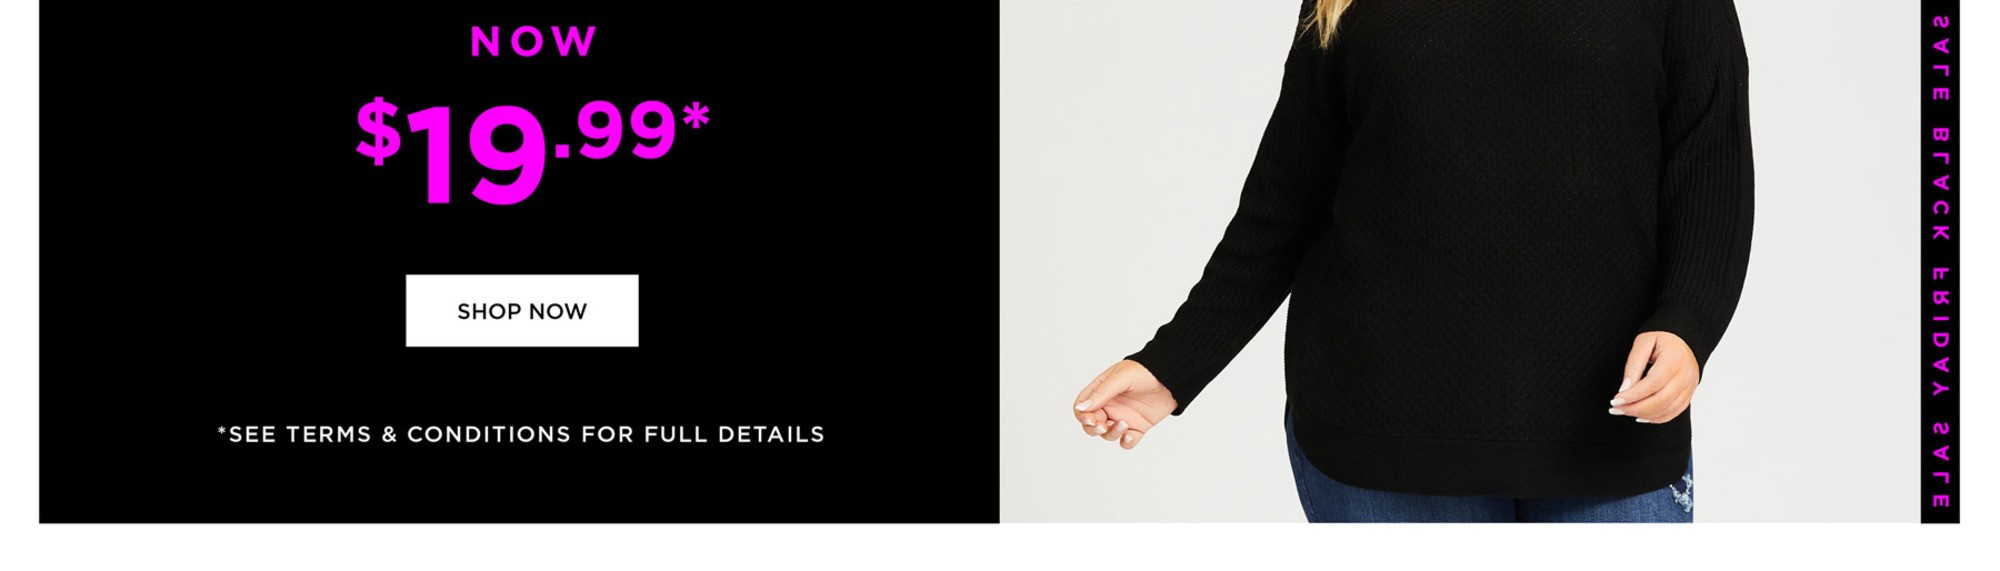 24 HOURS ONLY - SWEATERS NOW $19.99* - SHOP NOW - *See Terms & Conditions for Full Details